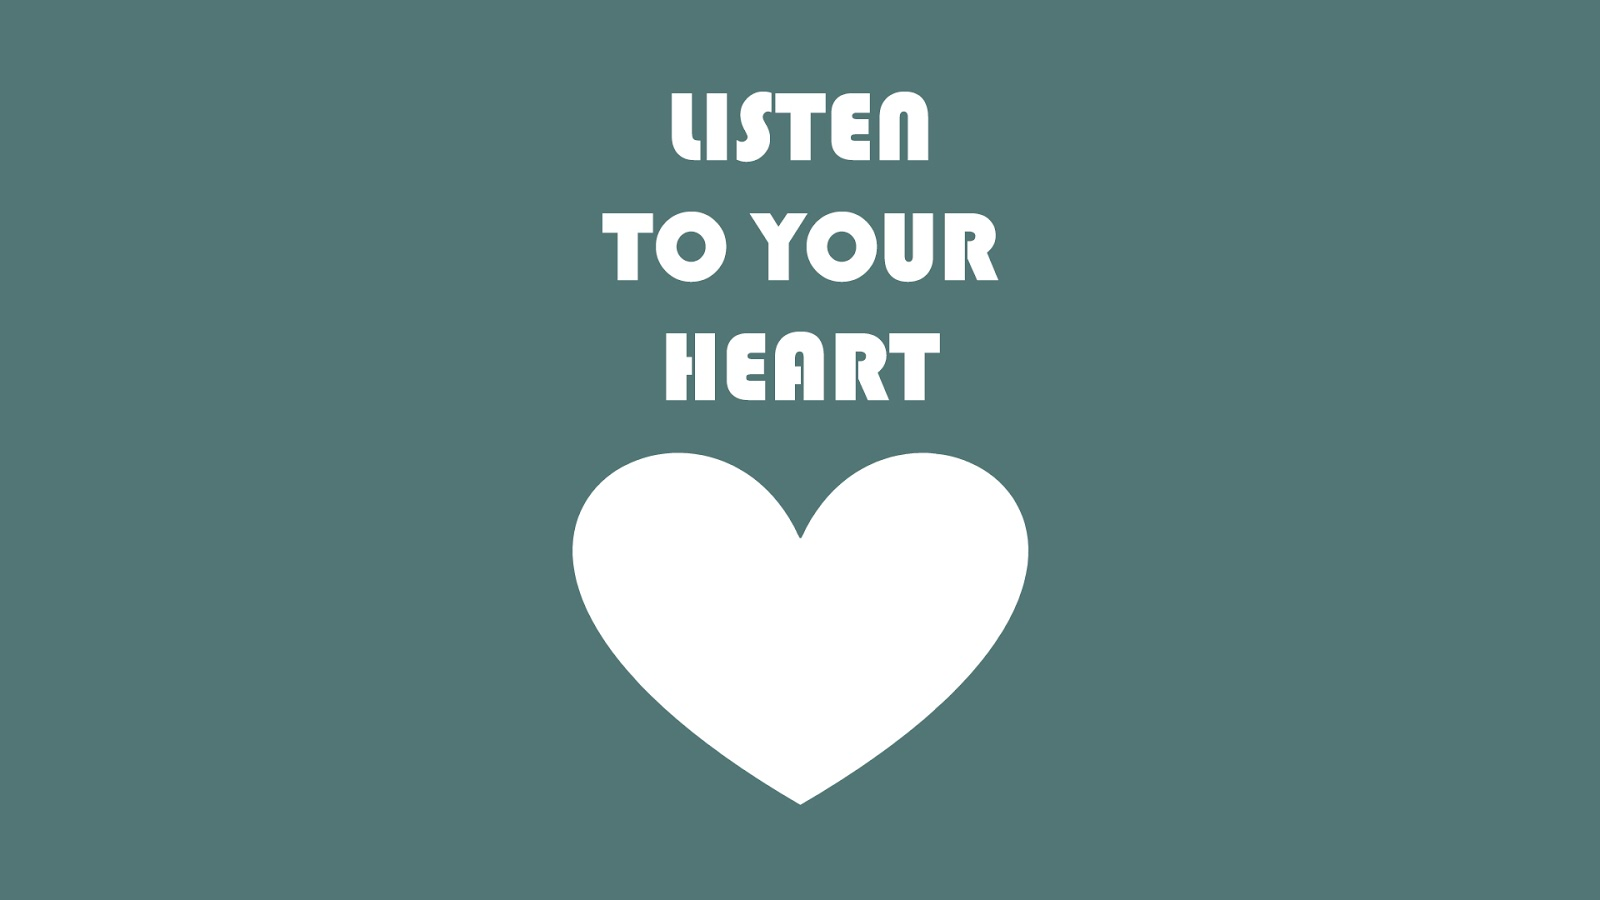 Listen to Your Heart | Inspirational Quotes | HNQuotes